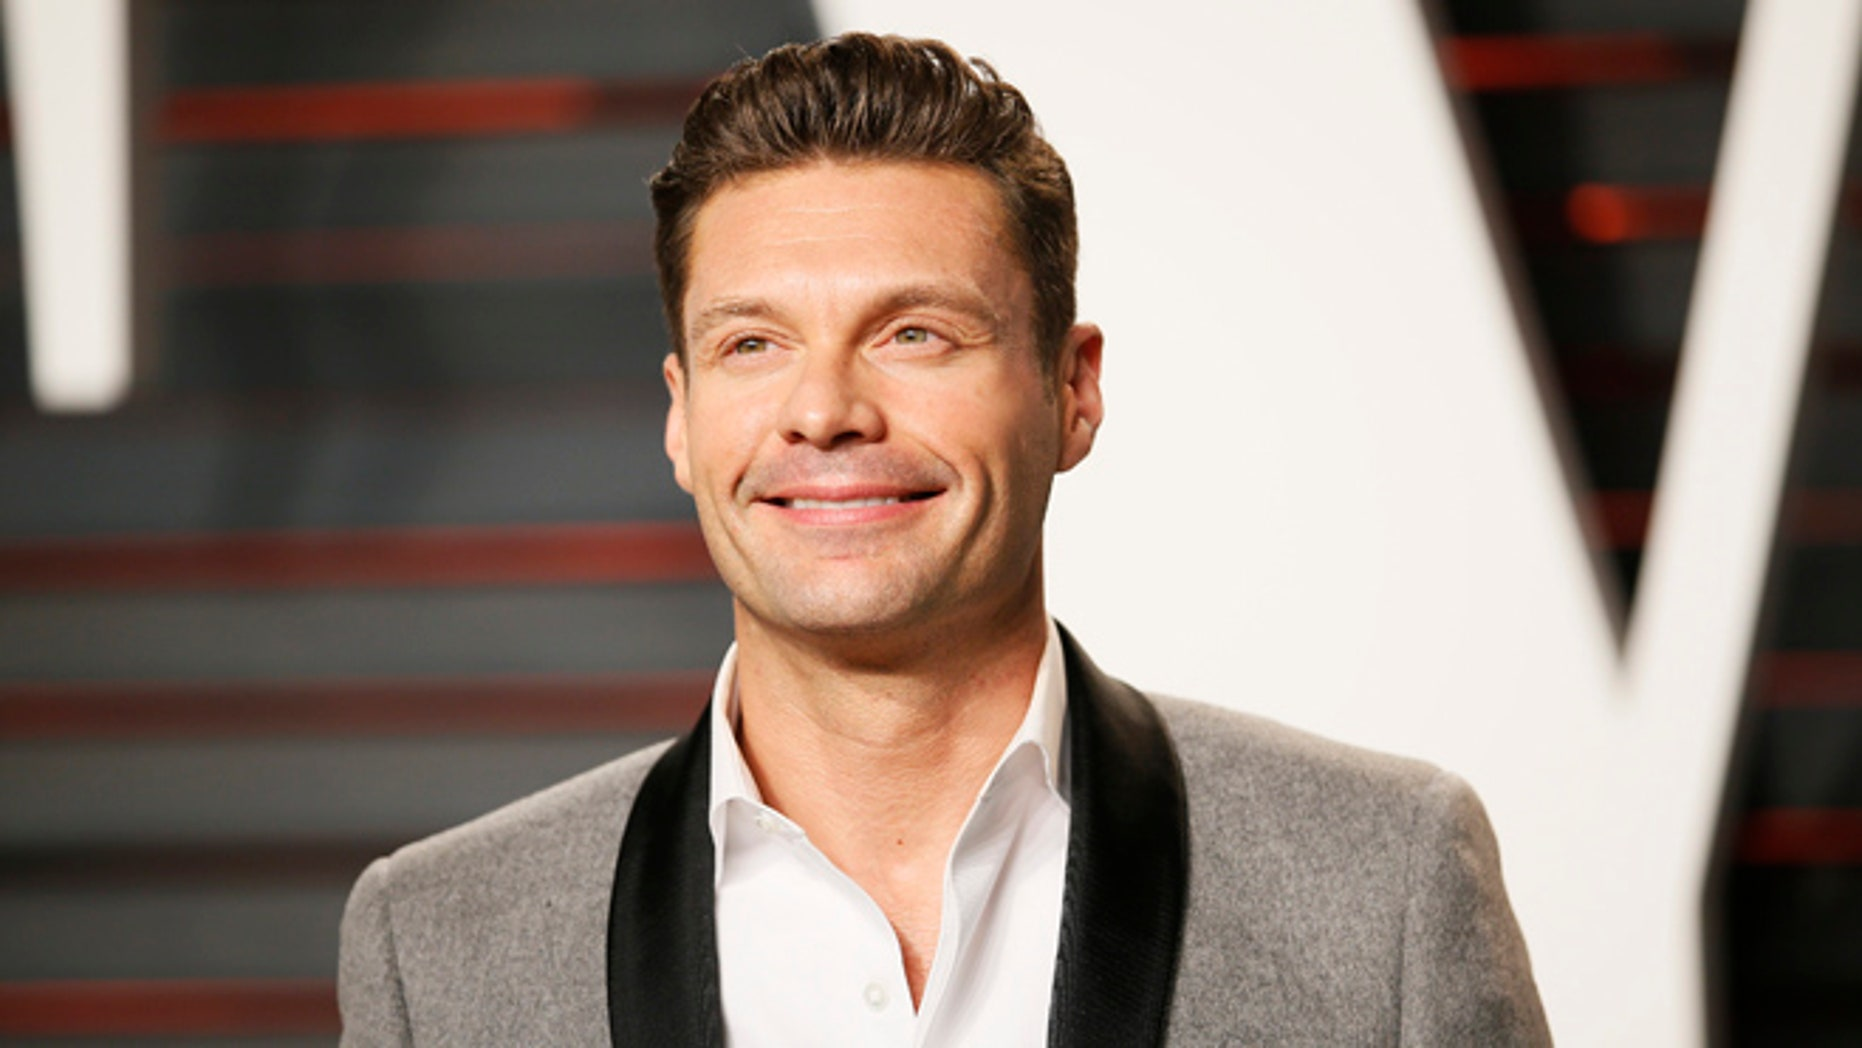 Ryan Seacrest is reportedly looking for a new TV gig